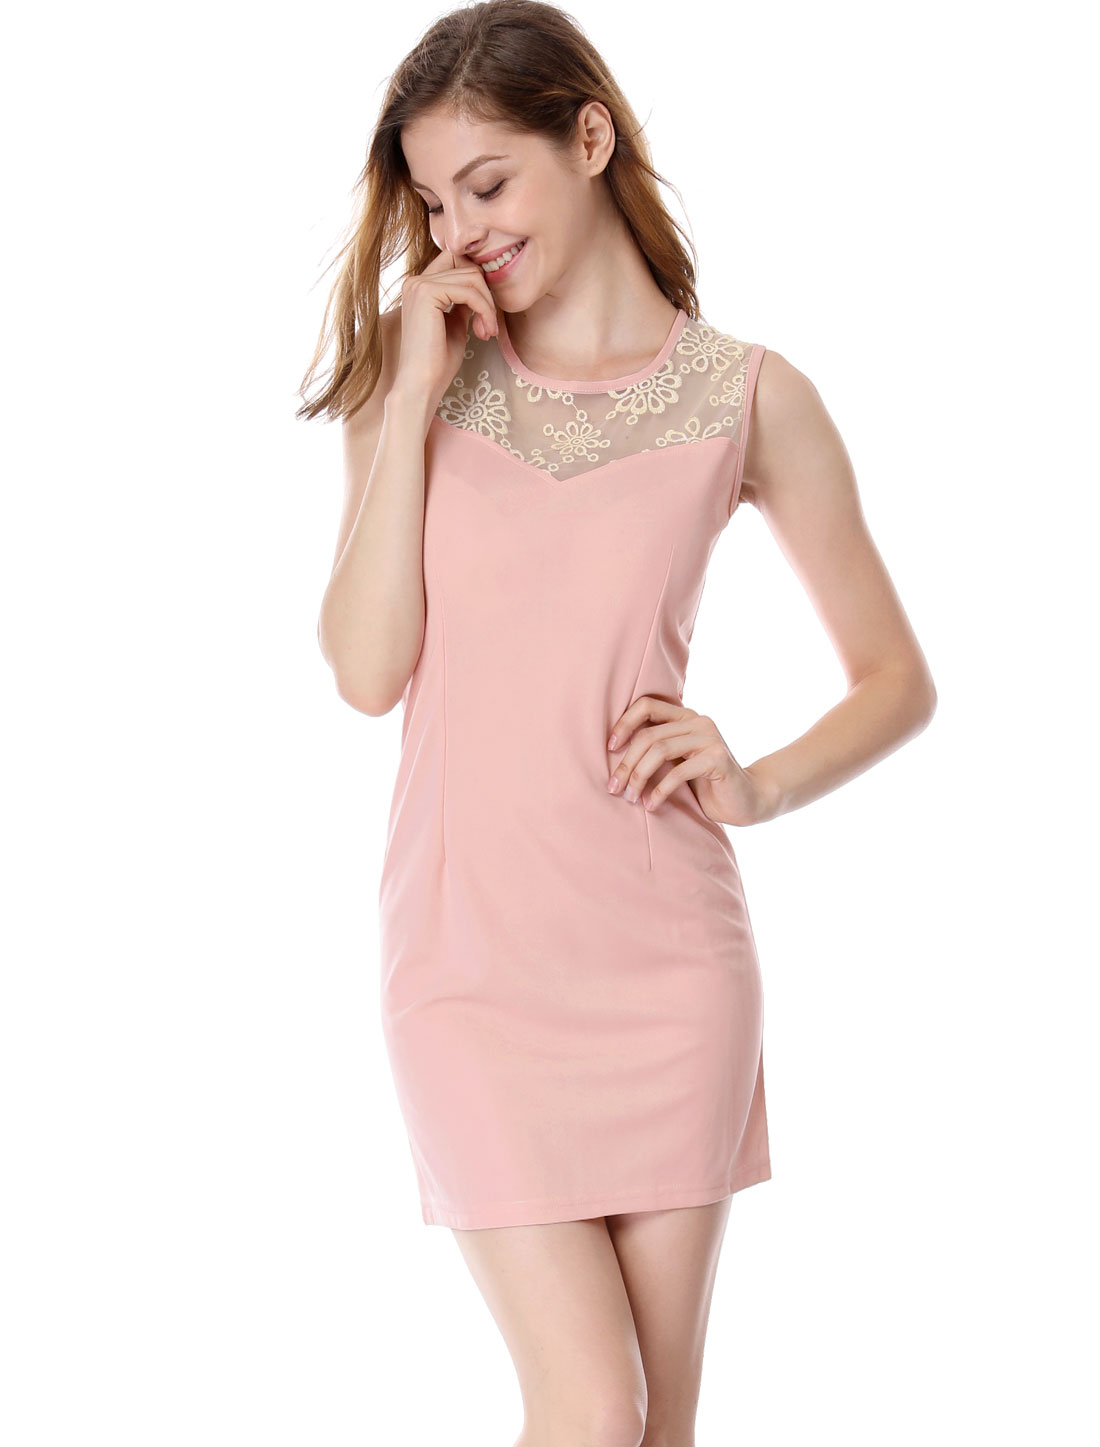 Scoop Neck Hidden Zipper Back Pale Pink Mini Dress M for Lady